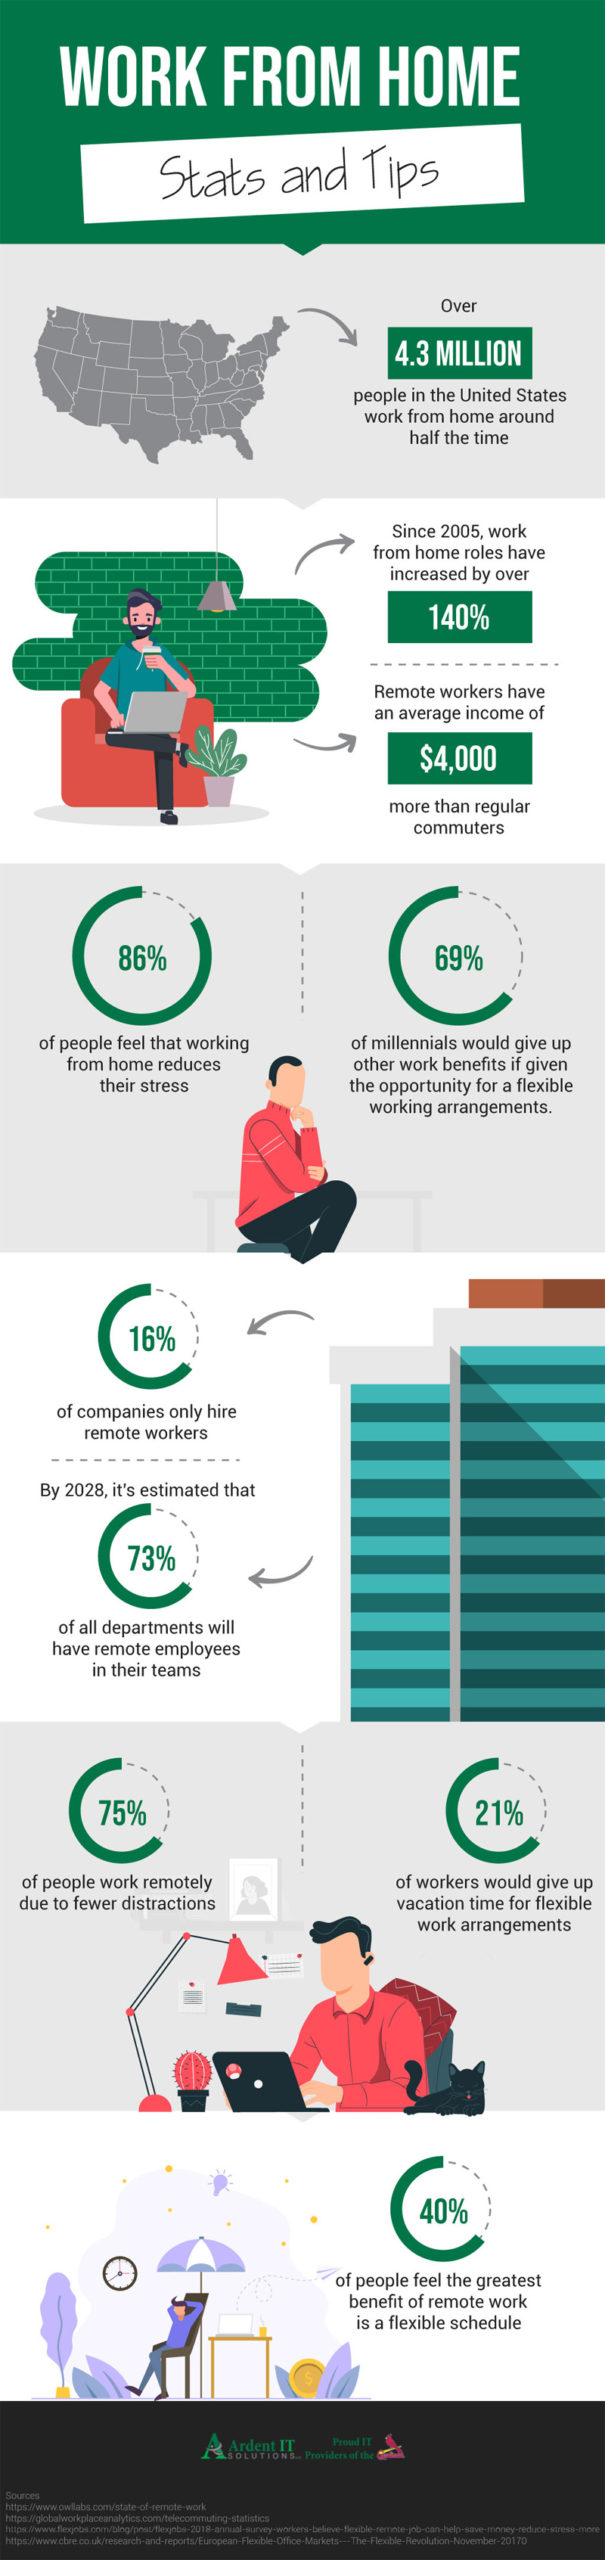 work from home stats and tips infographic